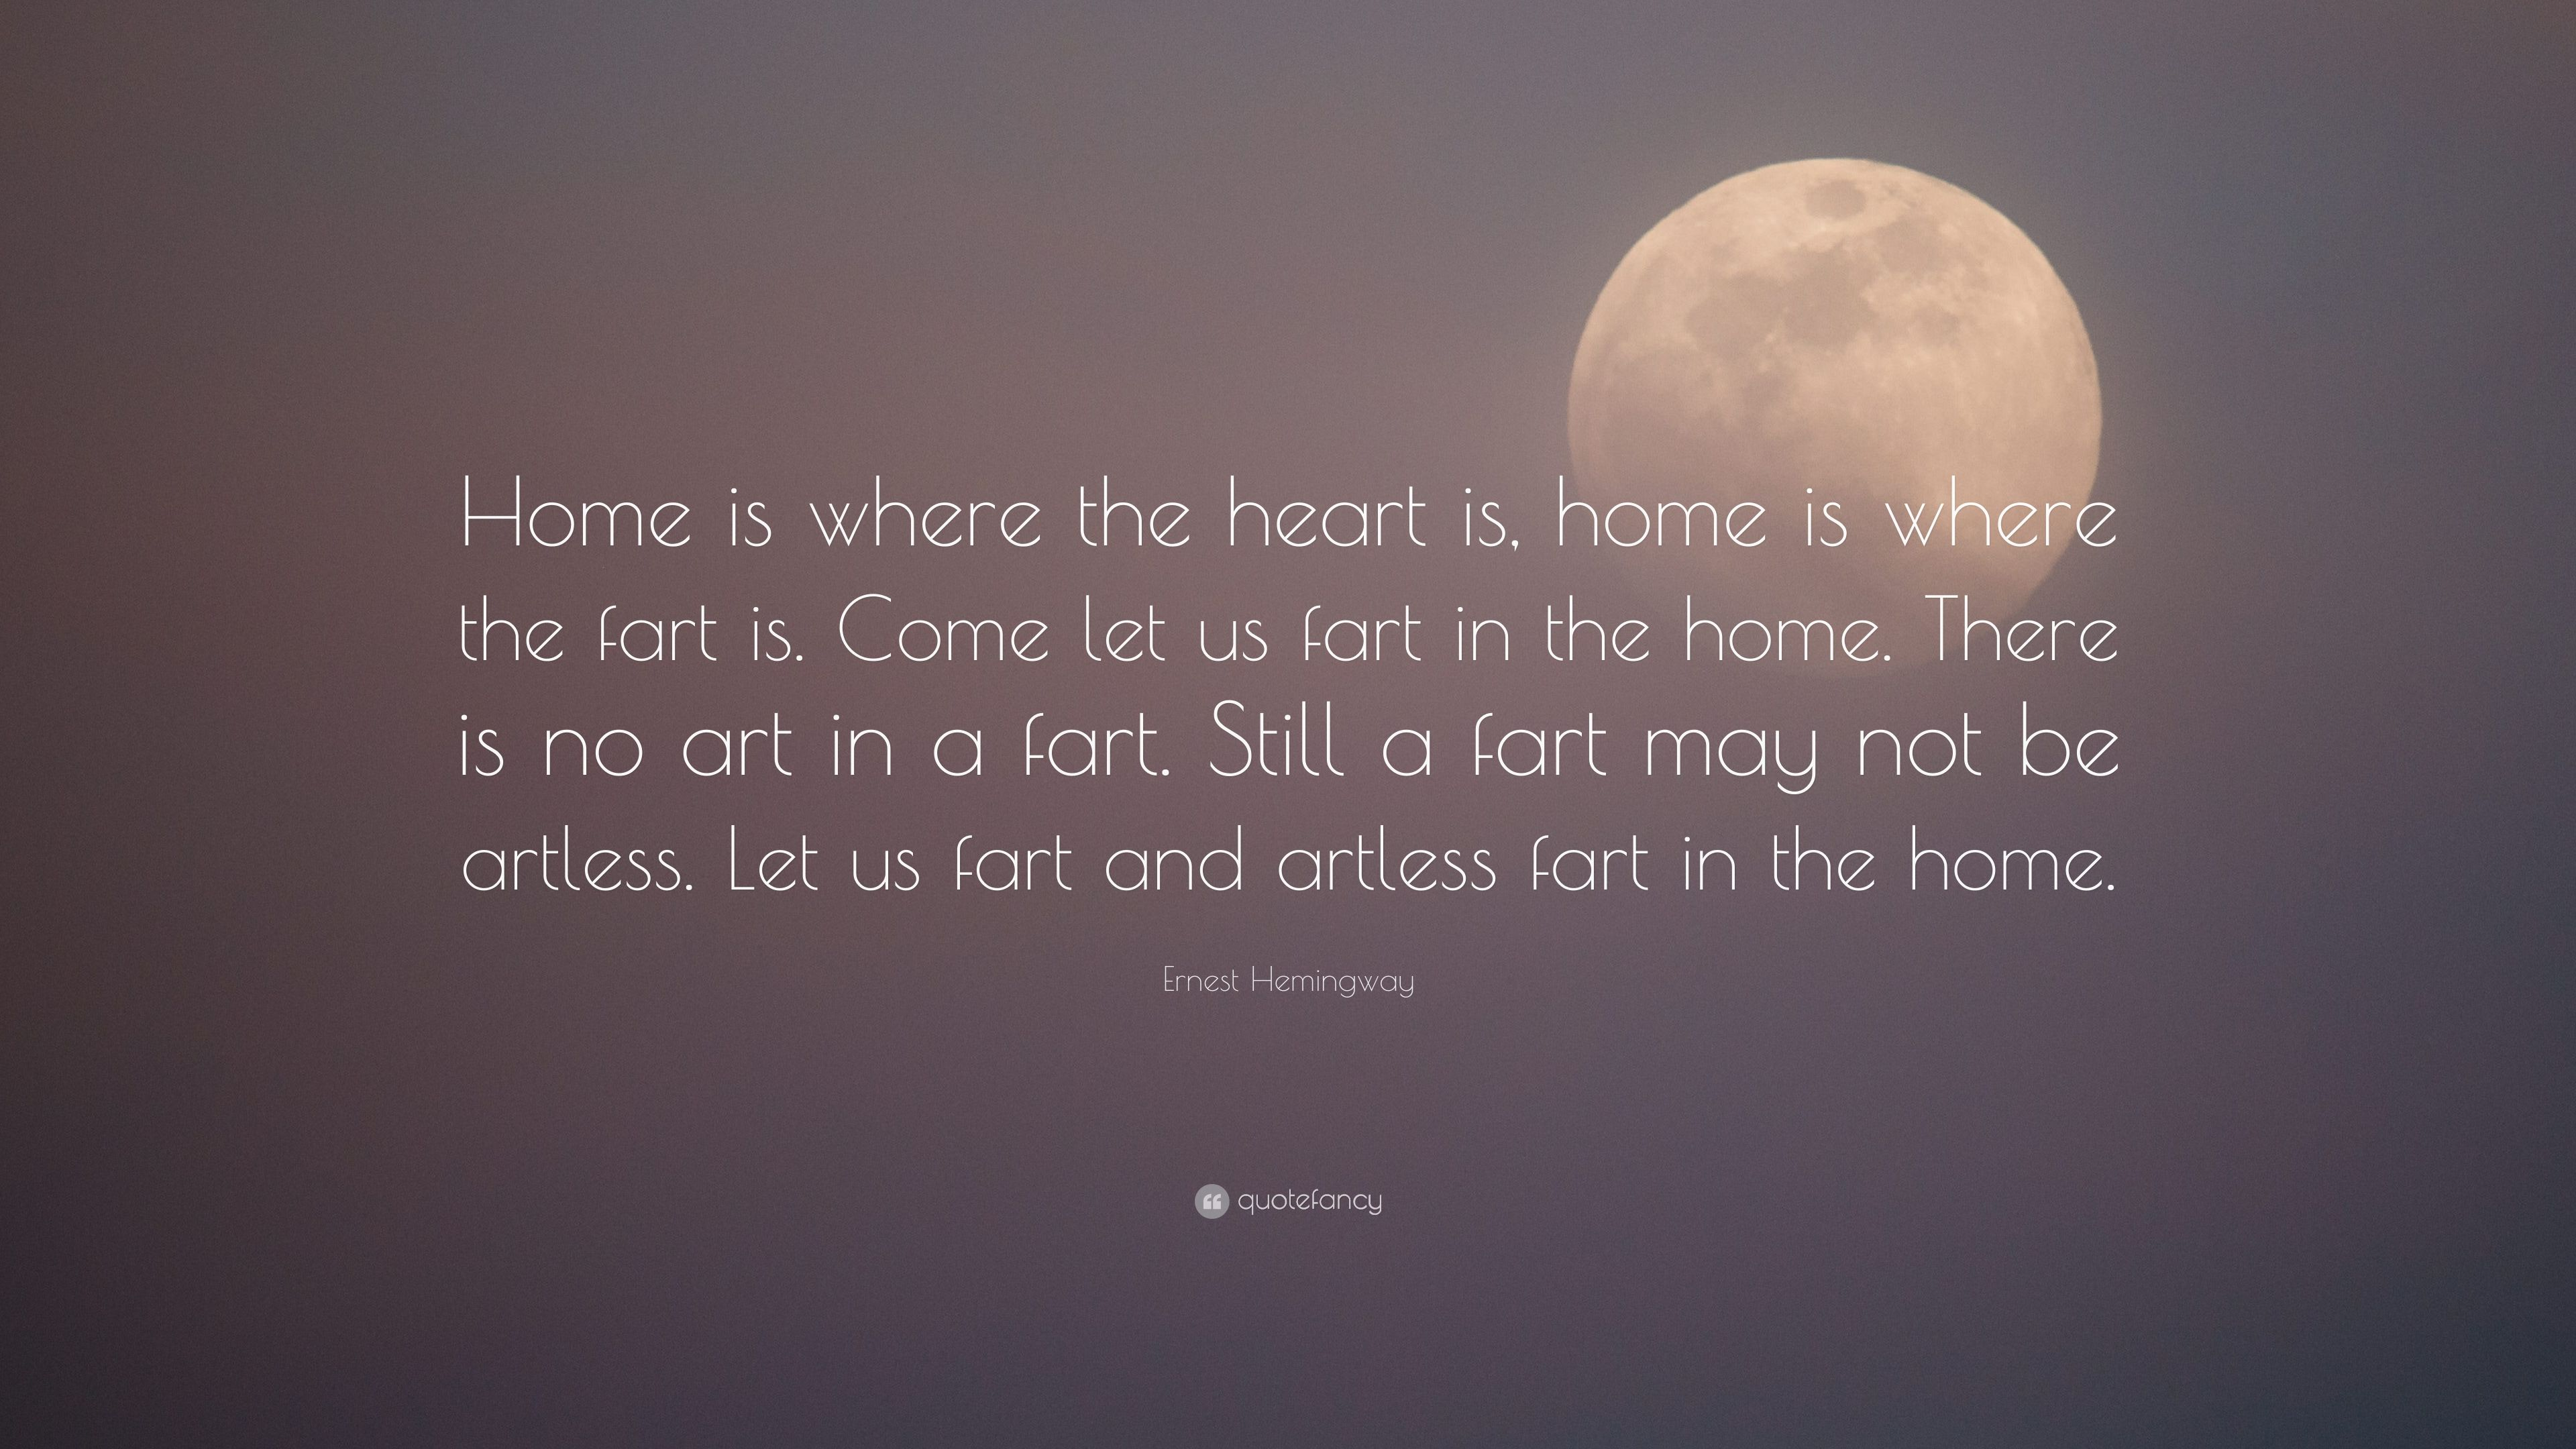 Ernest Hemingway Quote Home Is Where The Heart Is Home Is Where